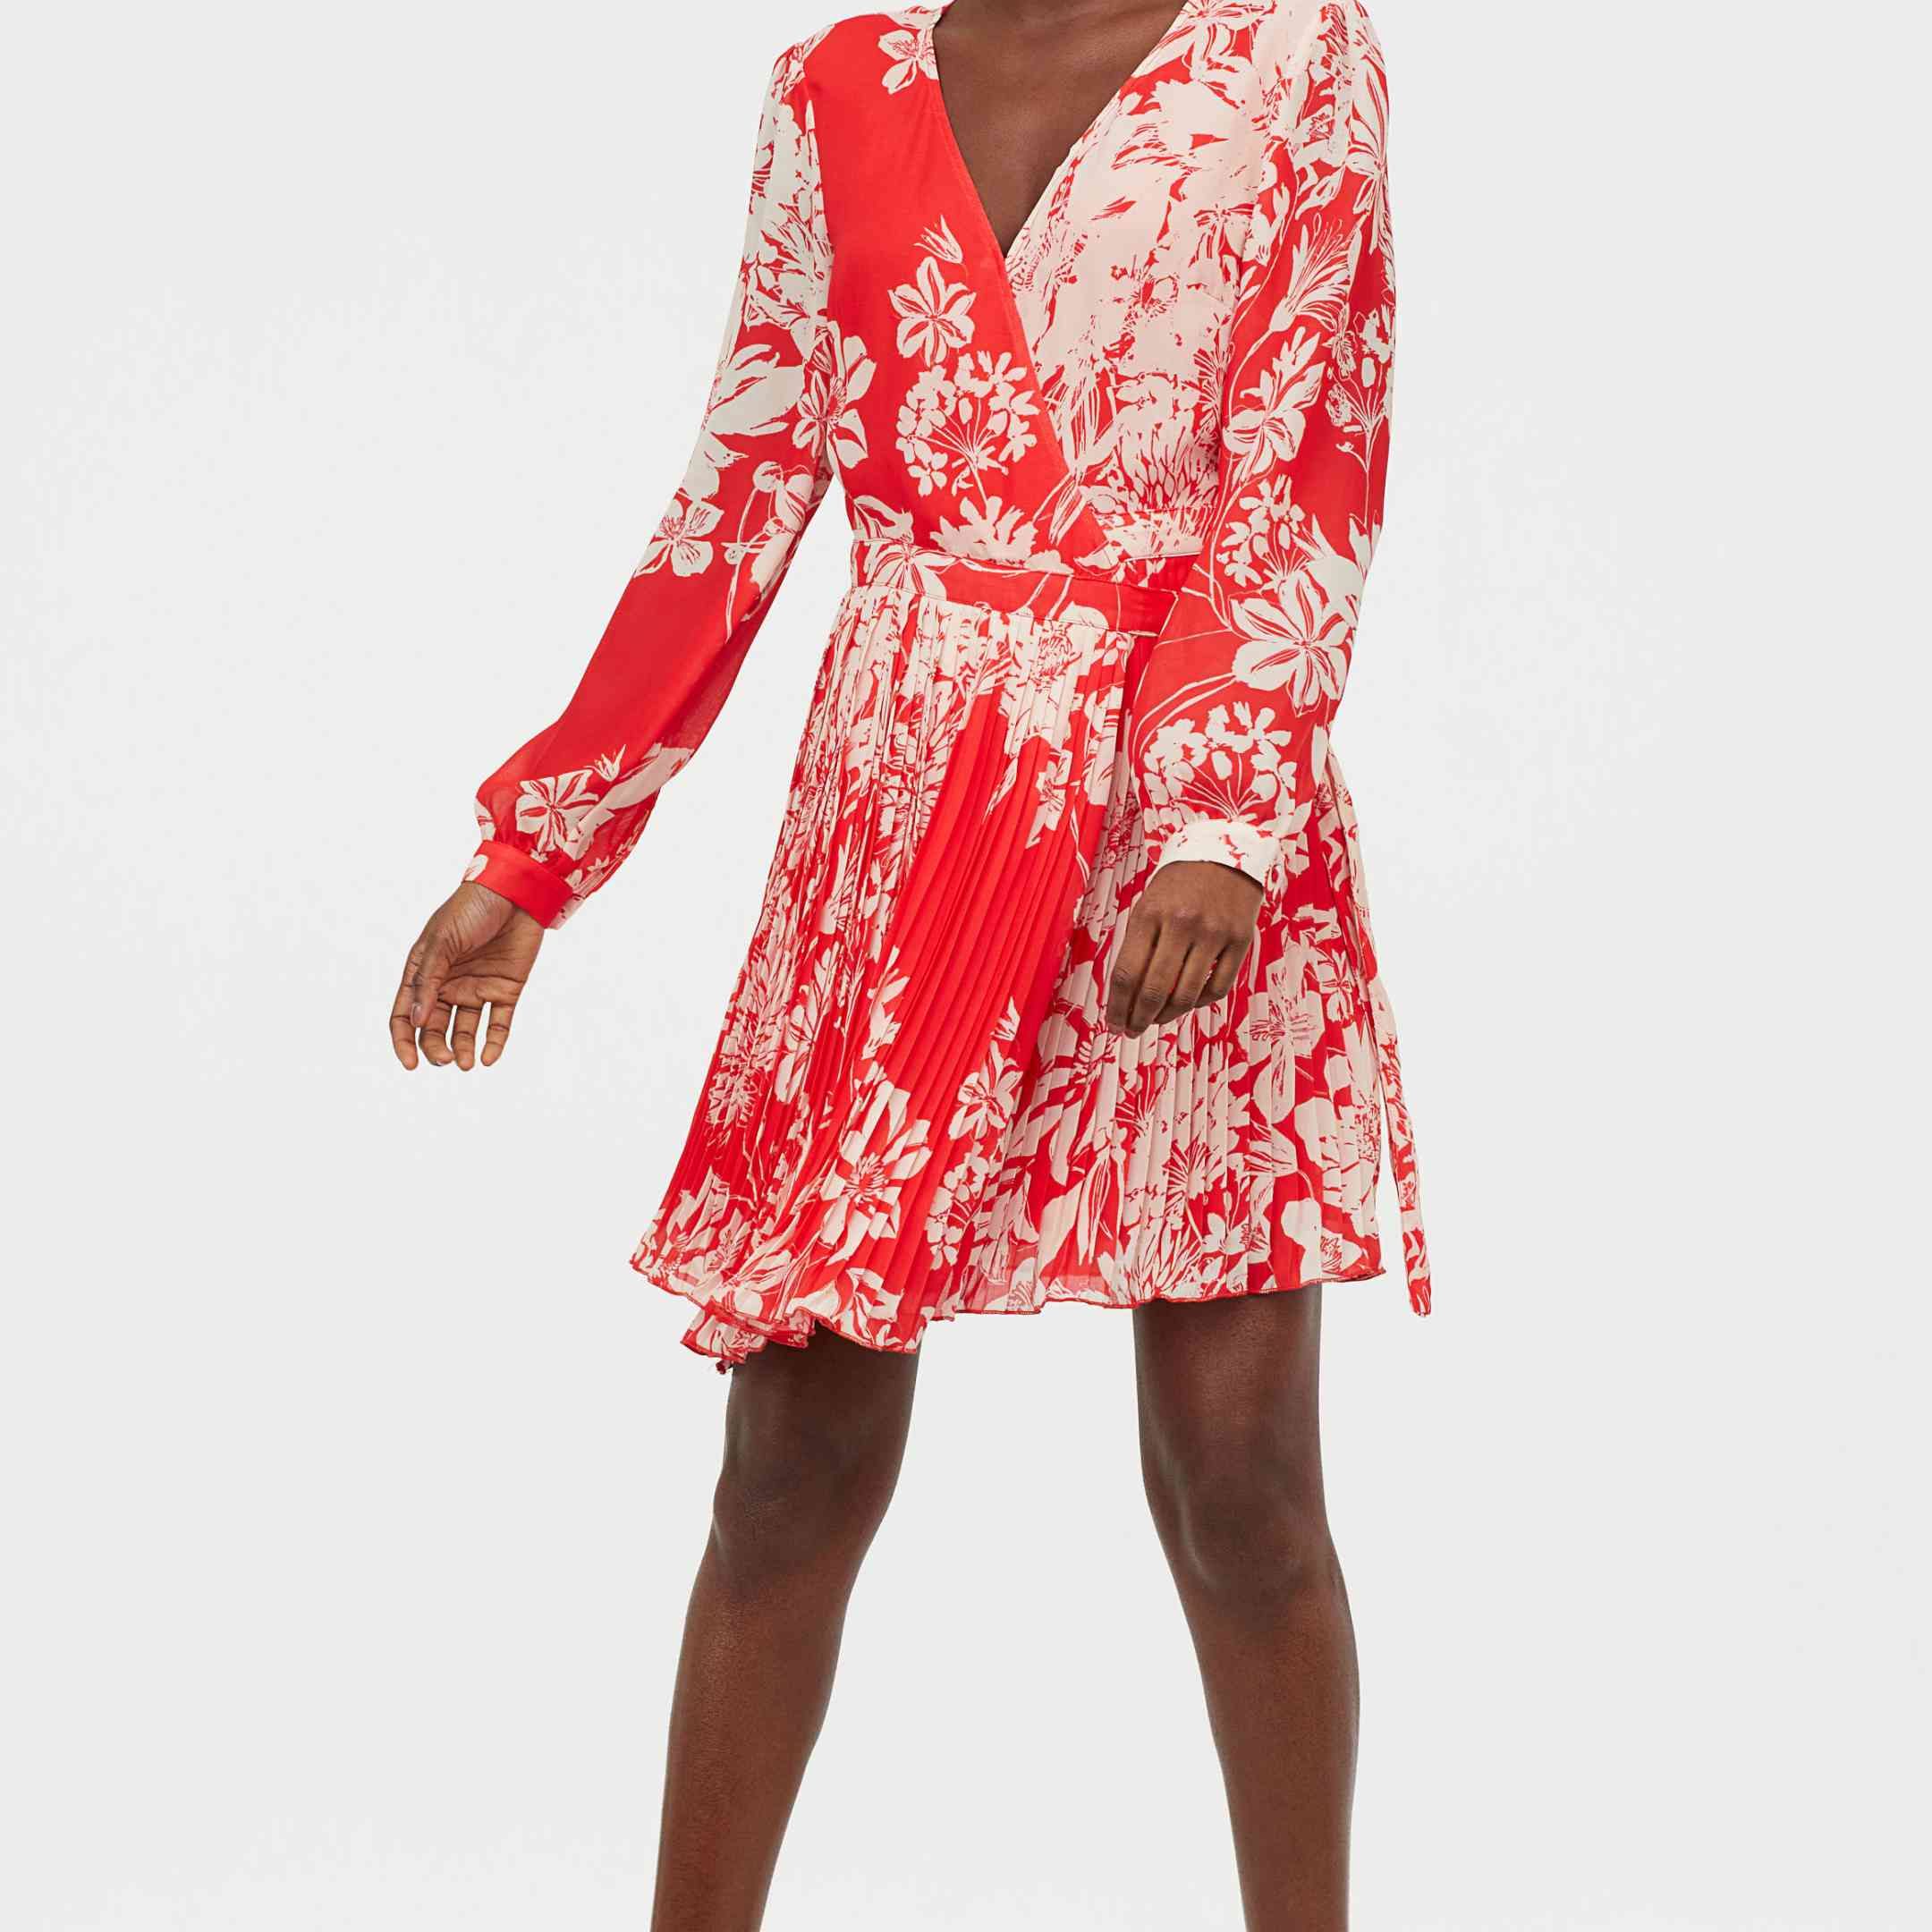 7 Flattering Wrap Dresses to Wear to a Wedding